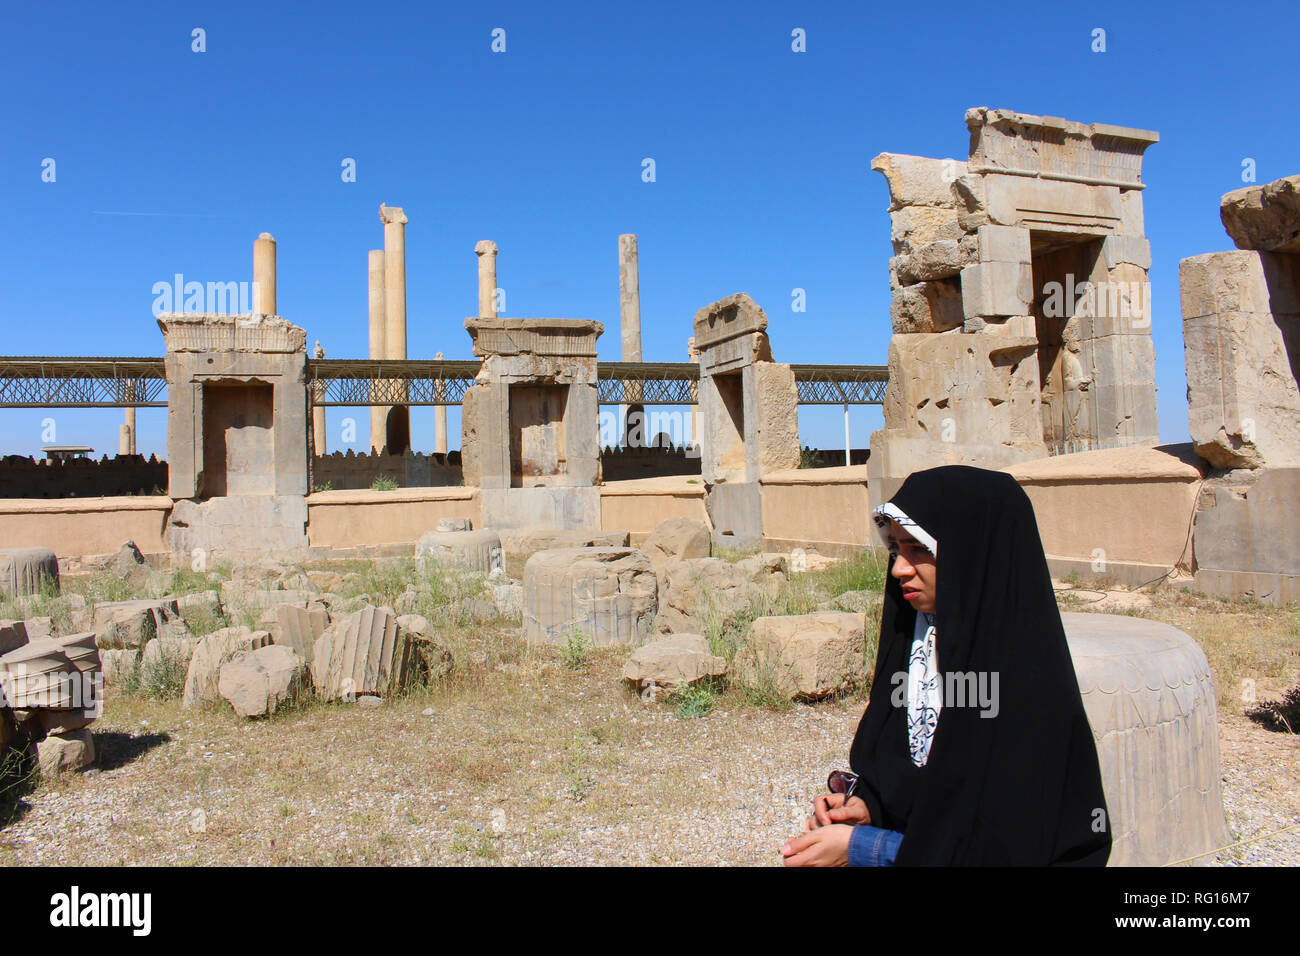 An Iranian girl in front of the ruins of the ceremonial capital of the Achaemenid Empire, Iran - Stock Image